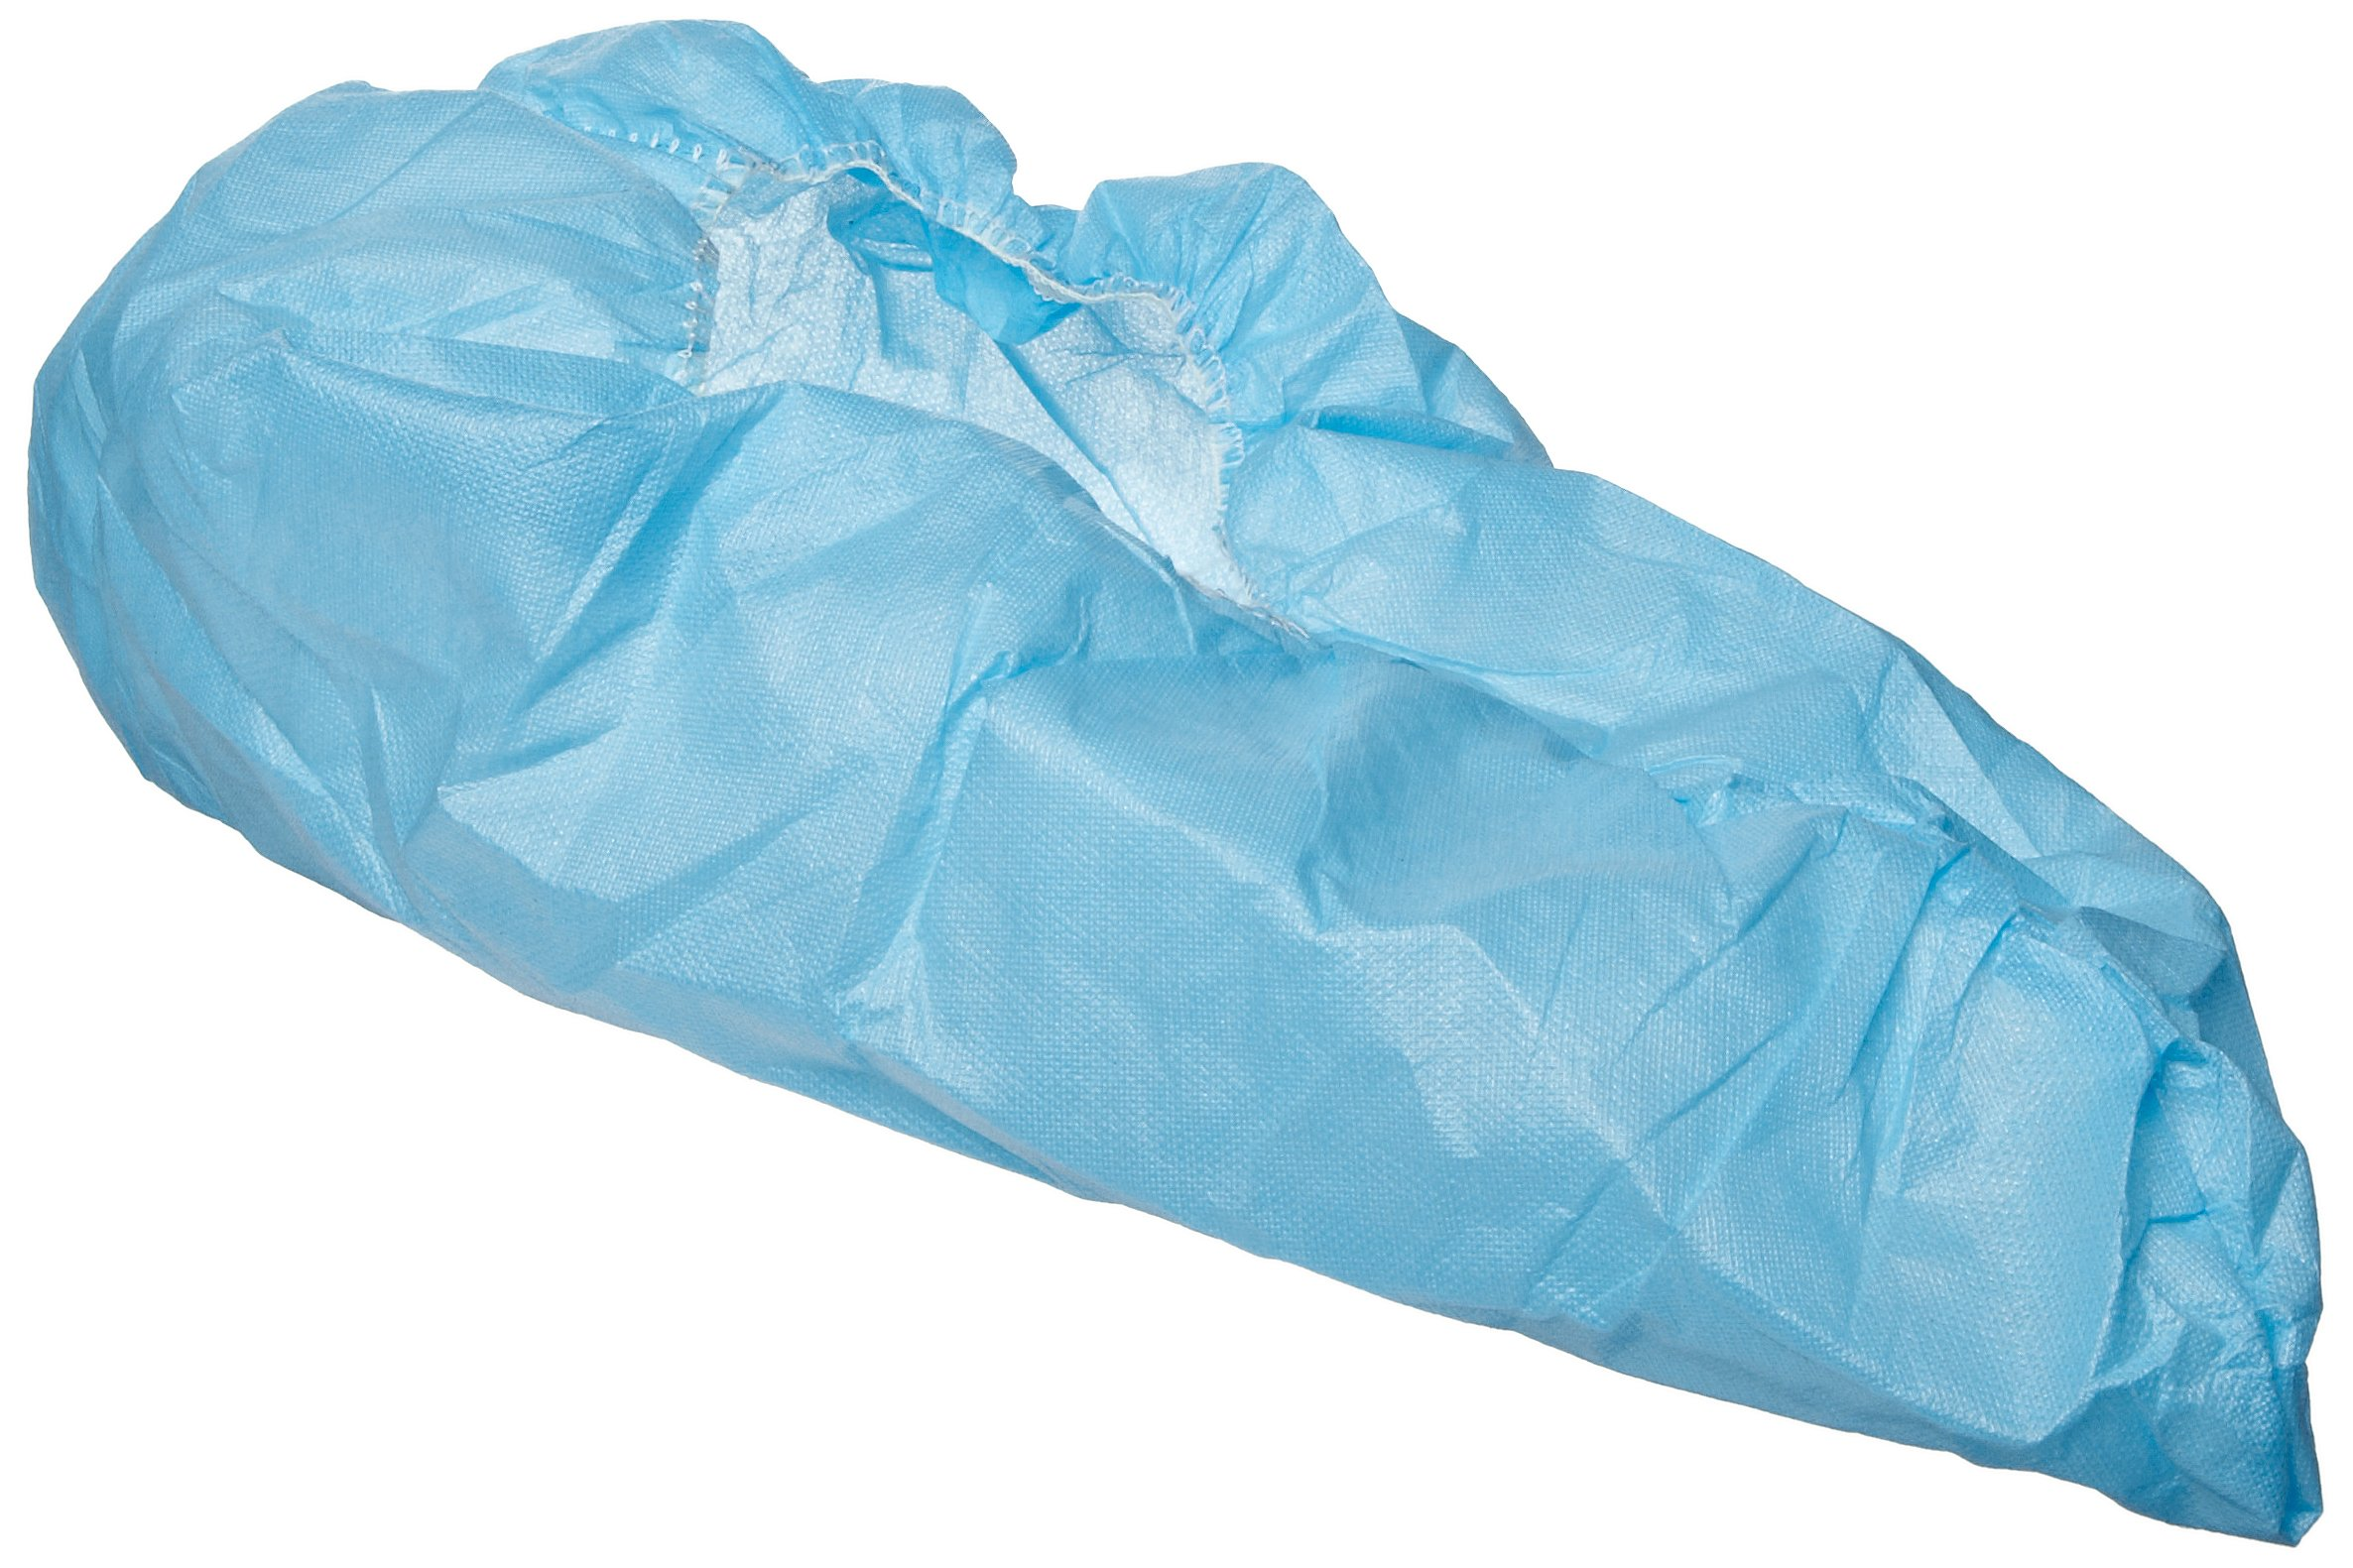 Keystone SC-SS-XL-BL Polypropylene Super Sticky Shoe Cover with Great Non-Skid Bottom, X-Large, Blue (Case of 300)